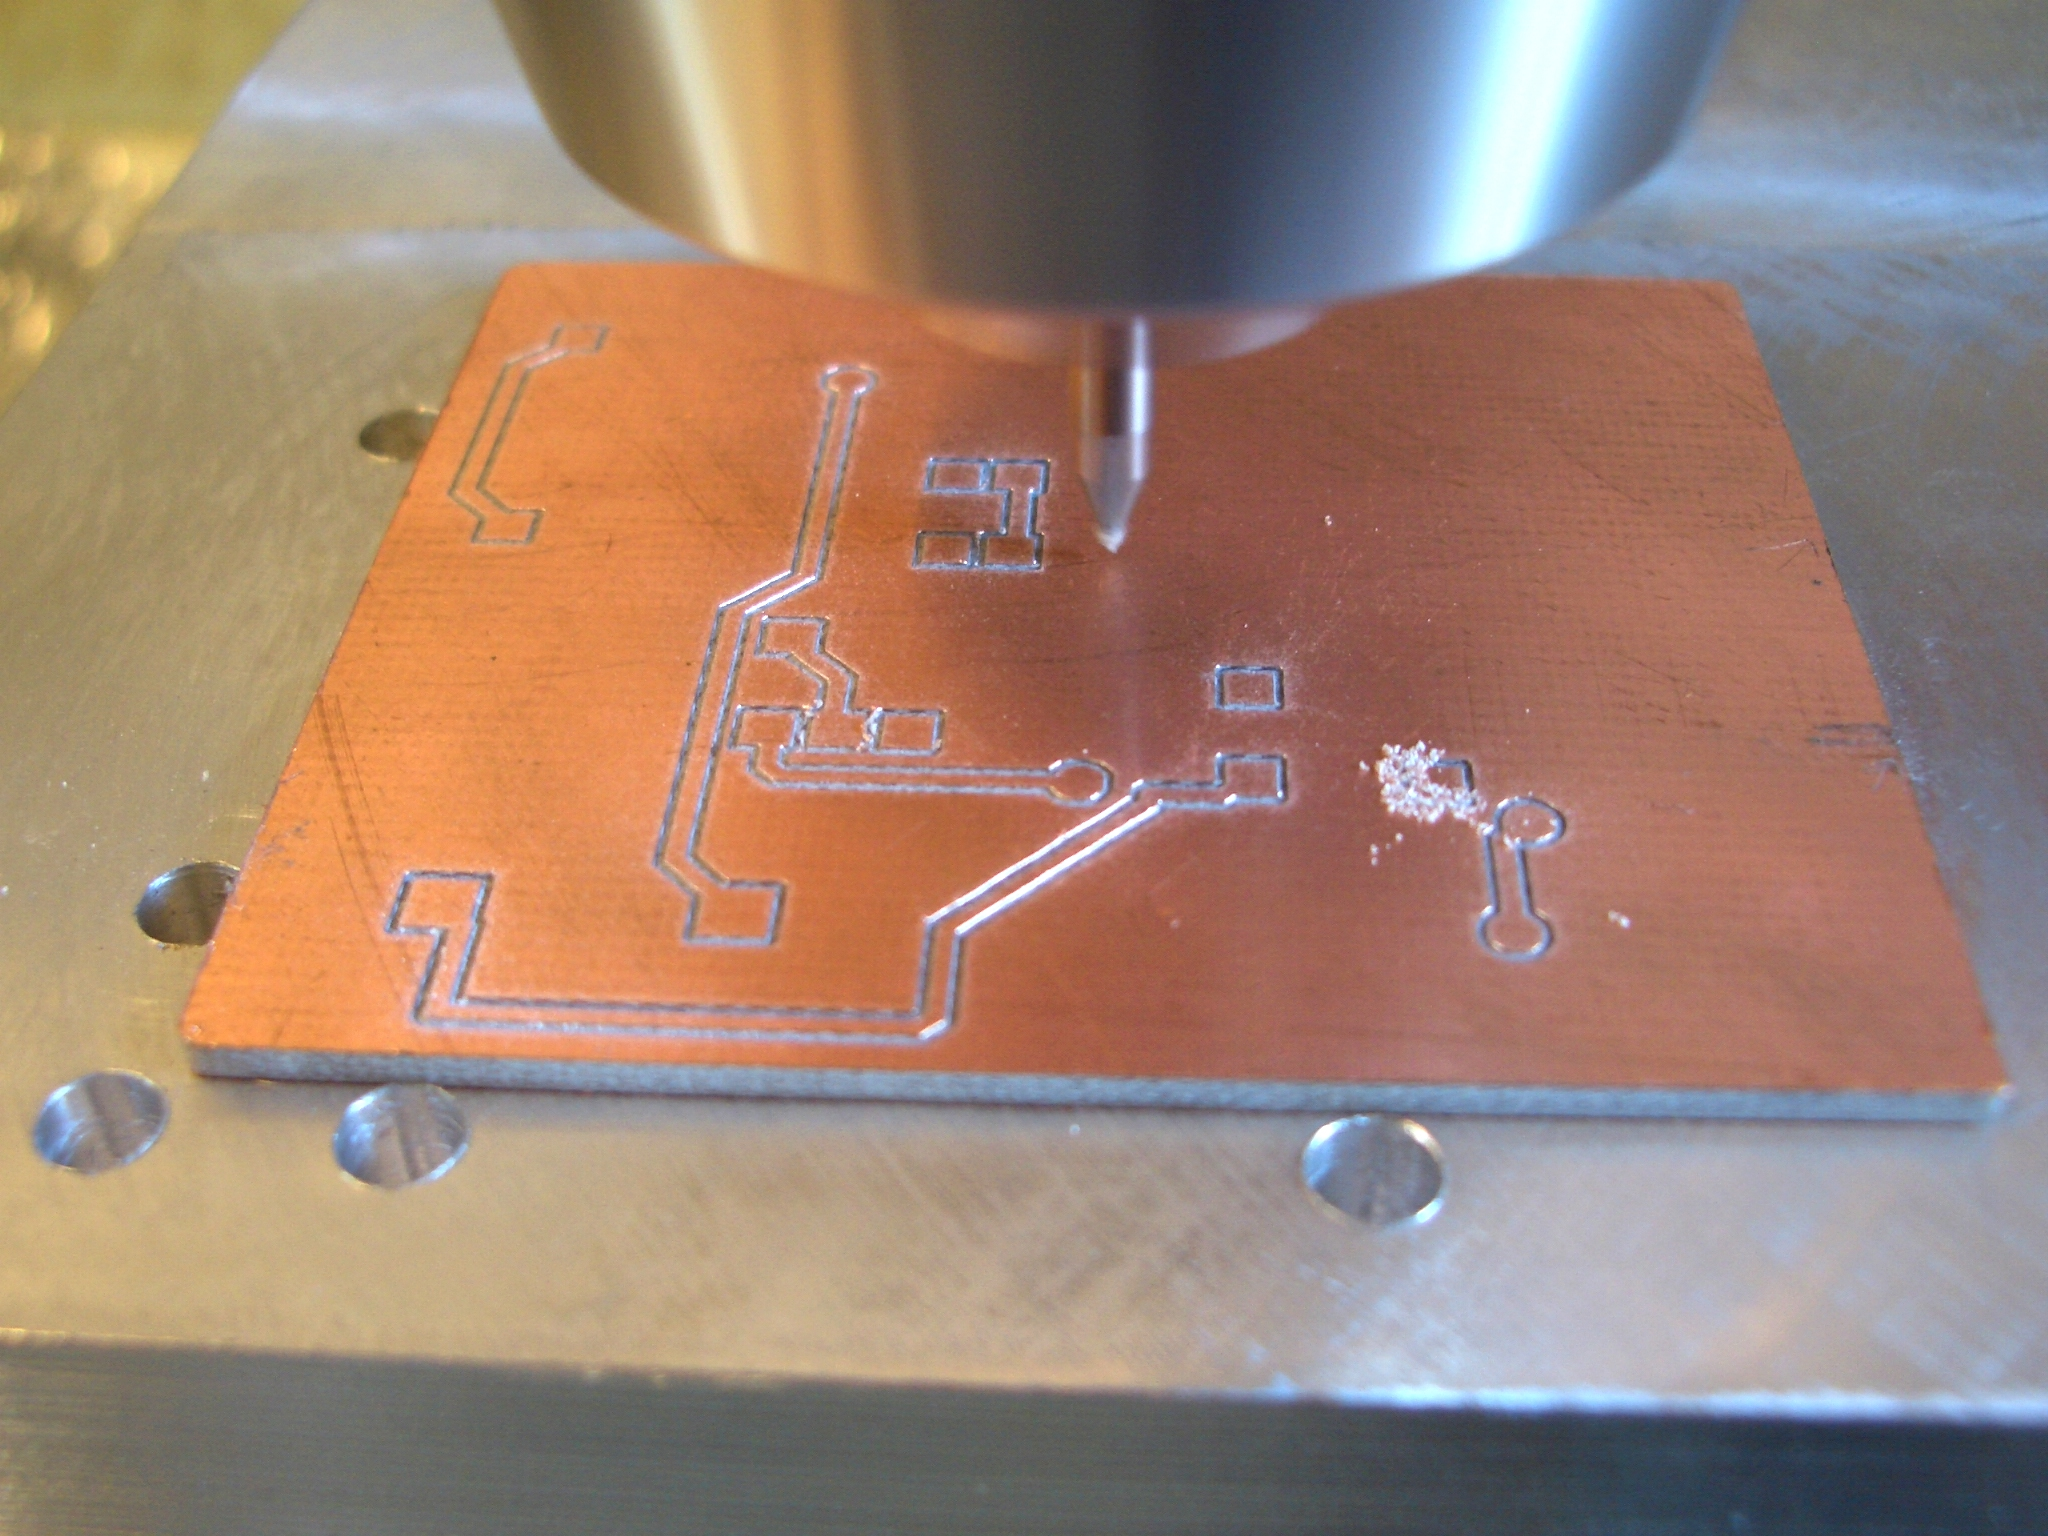 Cadsoft Eagle Printed Circuit Board Layout